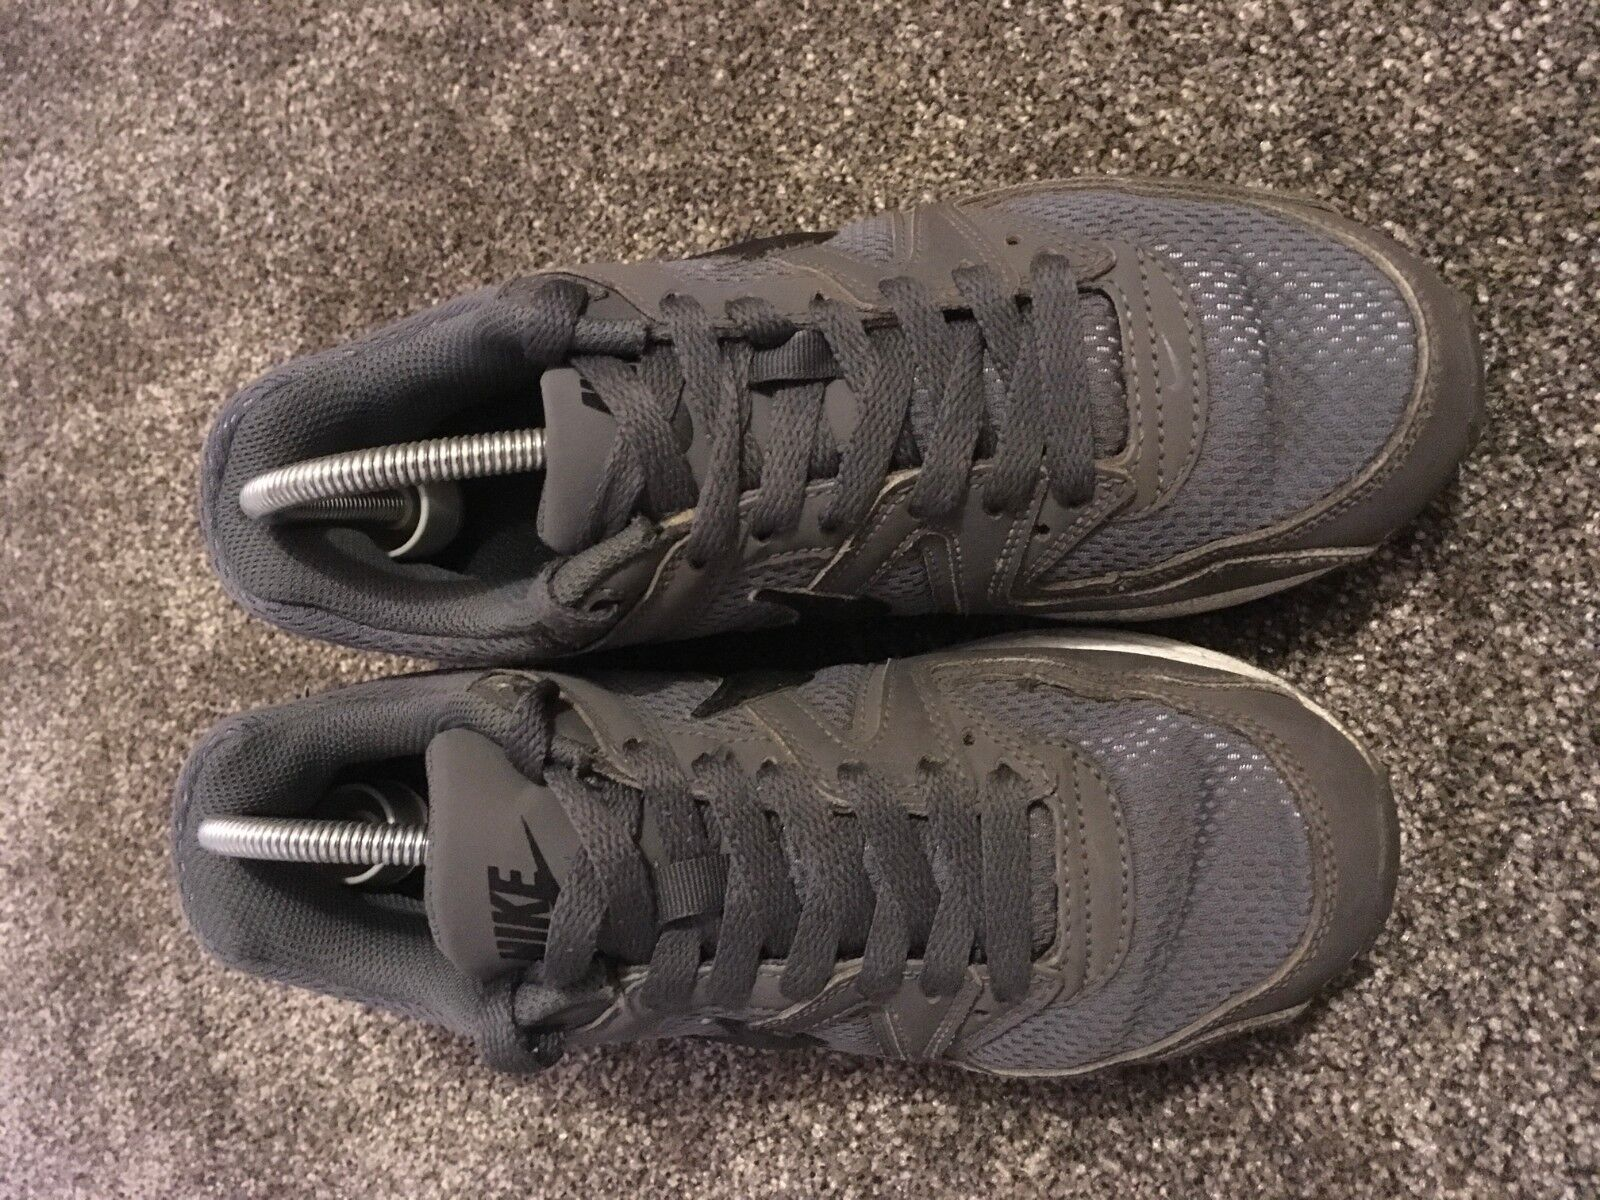 NIKE AIR MAX COMMAND GS BLACK GREY TRAINERS LEATHER SIZE UK 4 EU 36.5